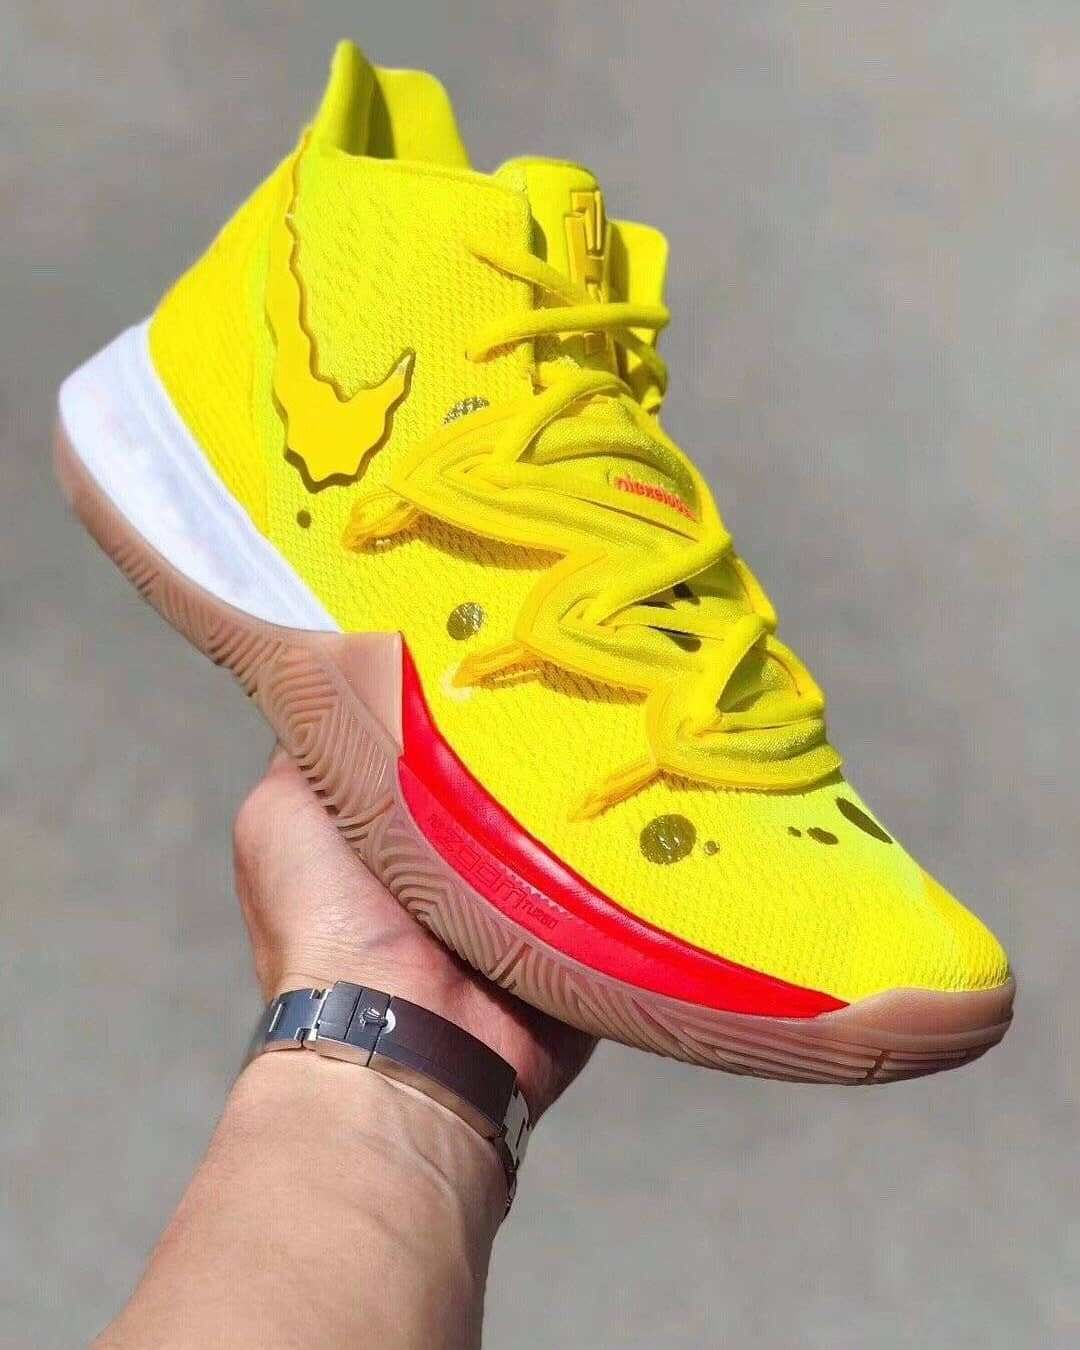 Kyrie Irving Teams Up with SpongeBob SquarePants for Sneaker